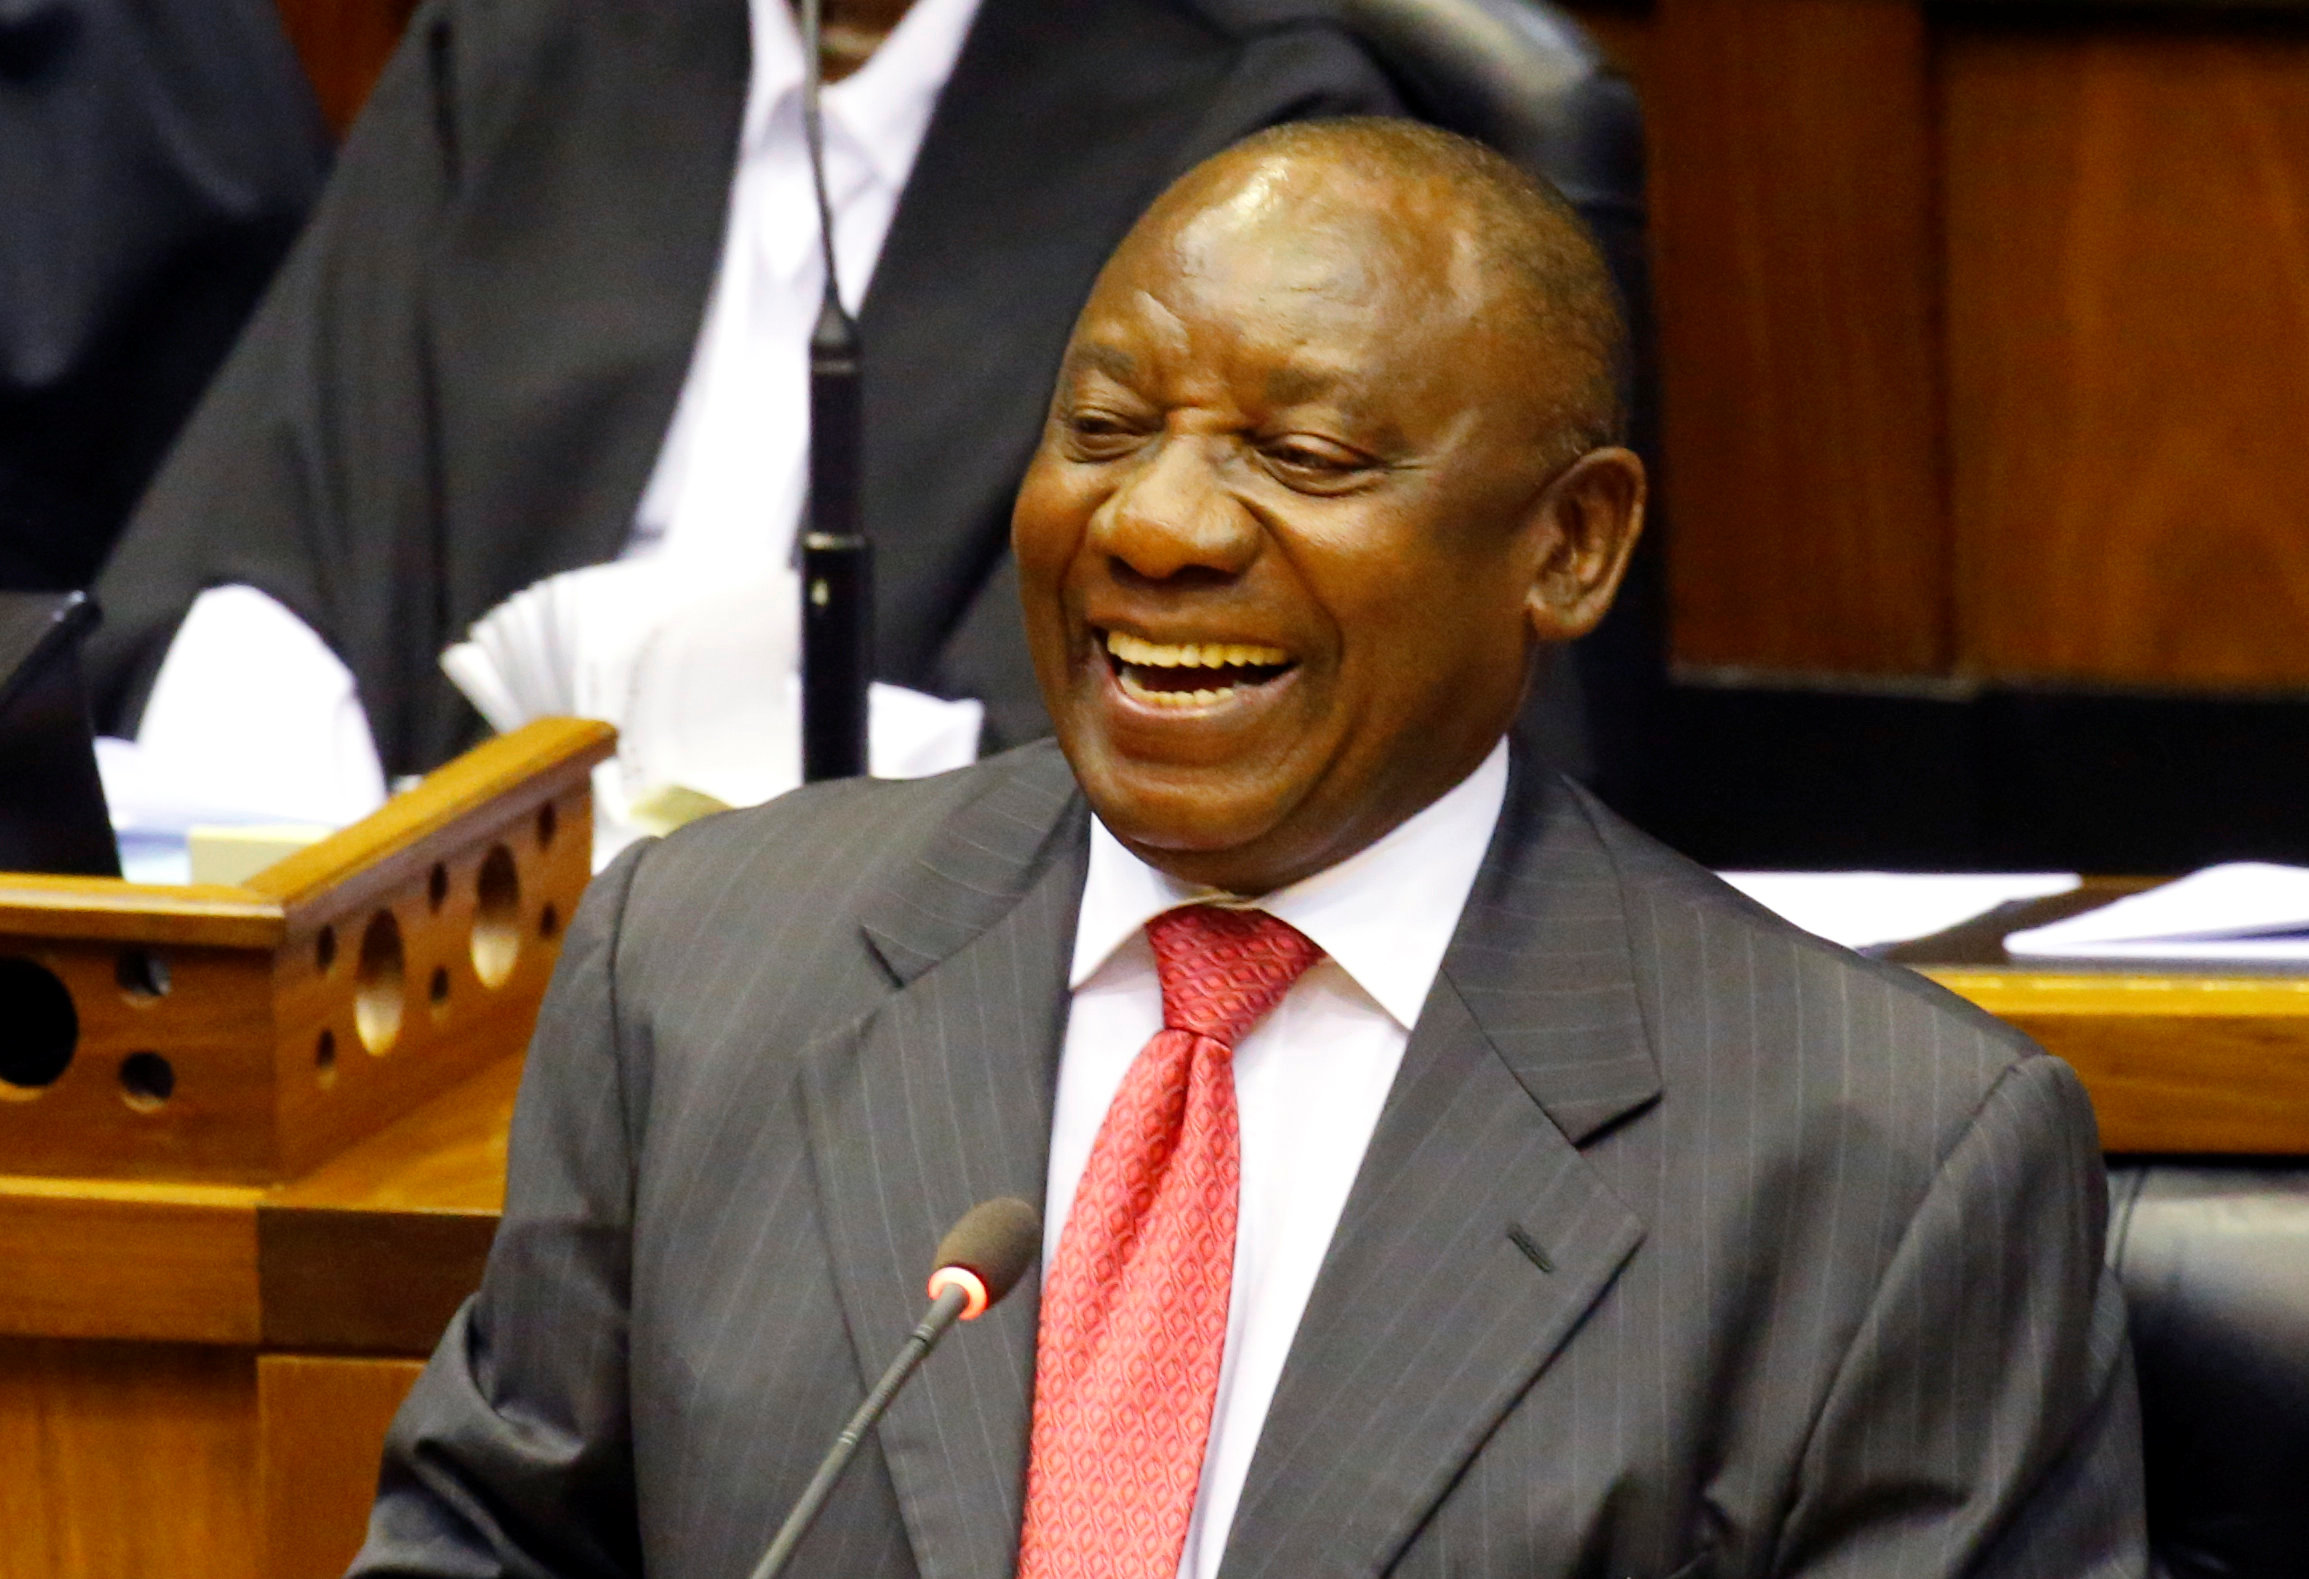 President of South Africa Cyril Ramaphosa smiles as he addresses MPs after being elected president in parliament in Cape Town, South Africa, February 15, 2018.